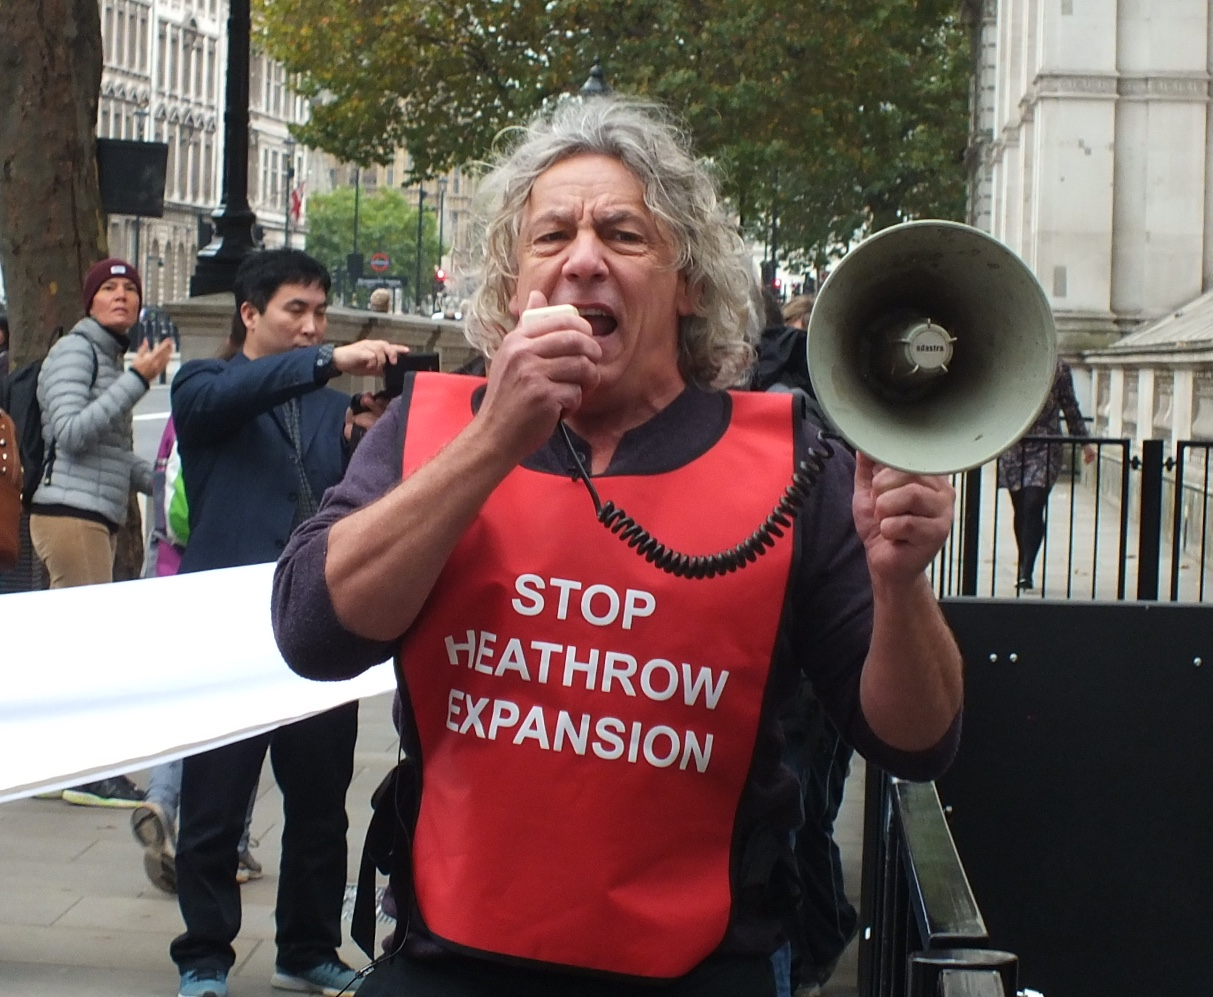 Harmondsworth villager makes sure that protesters are heard